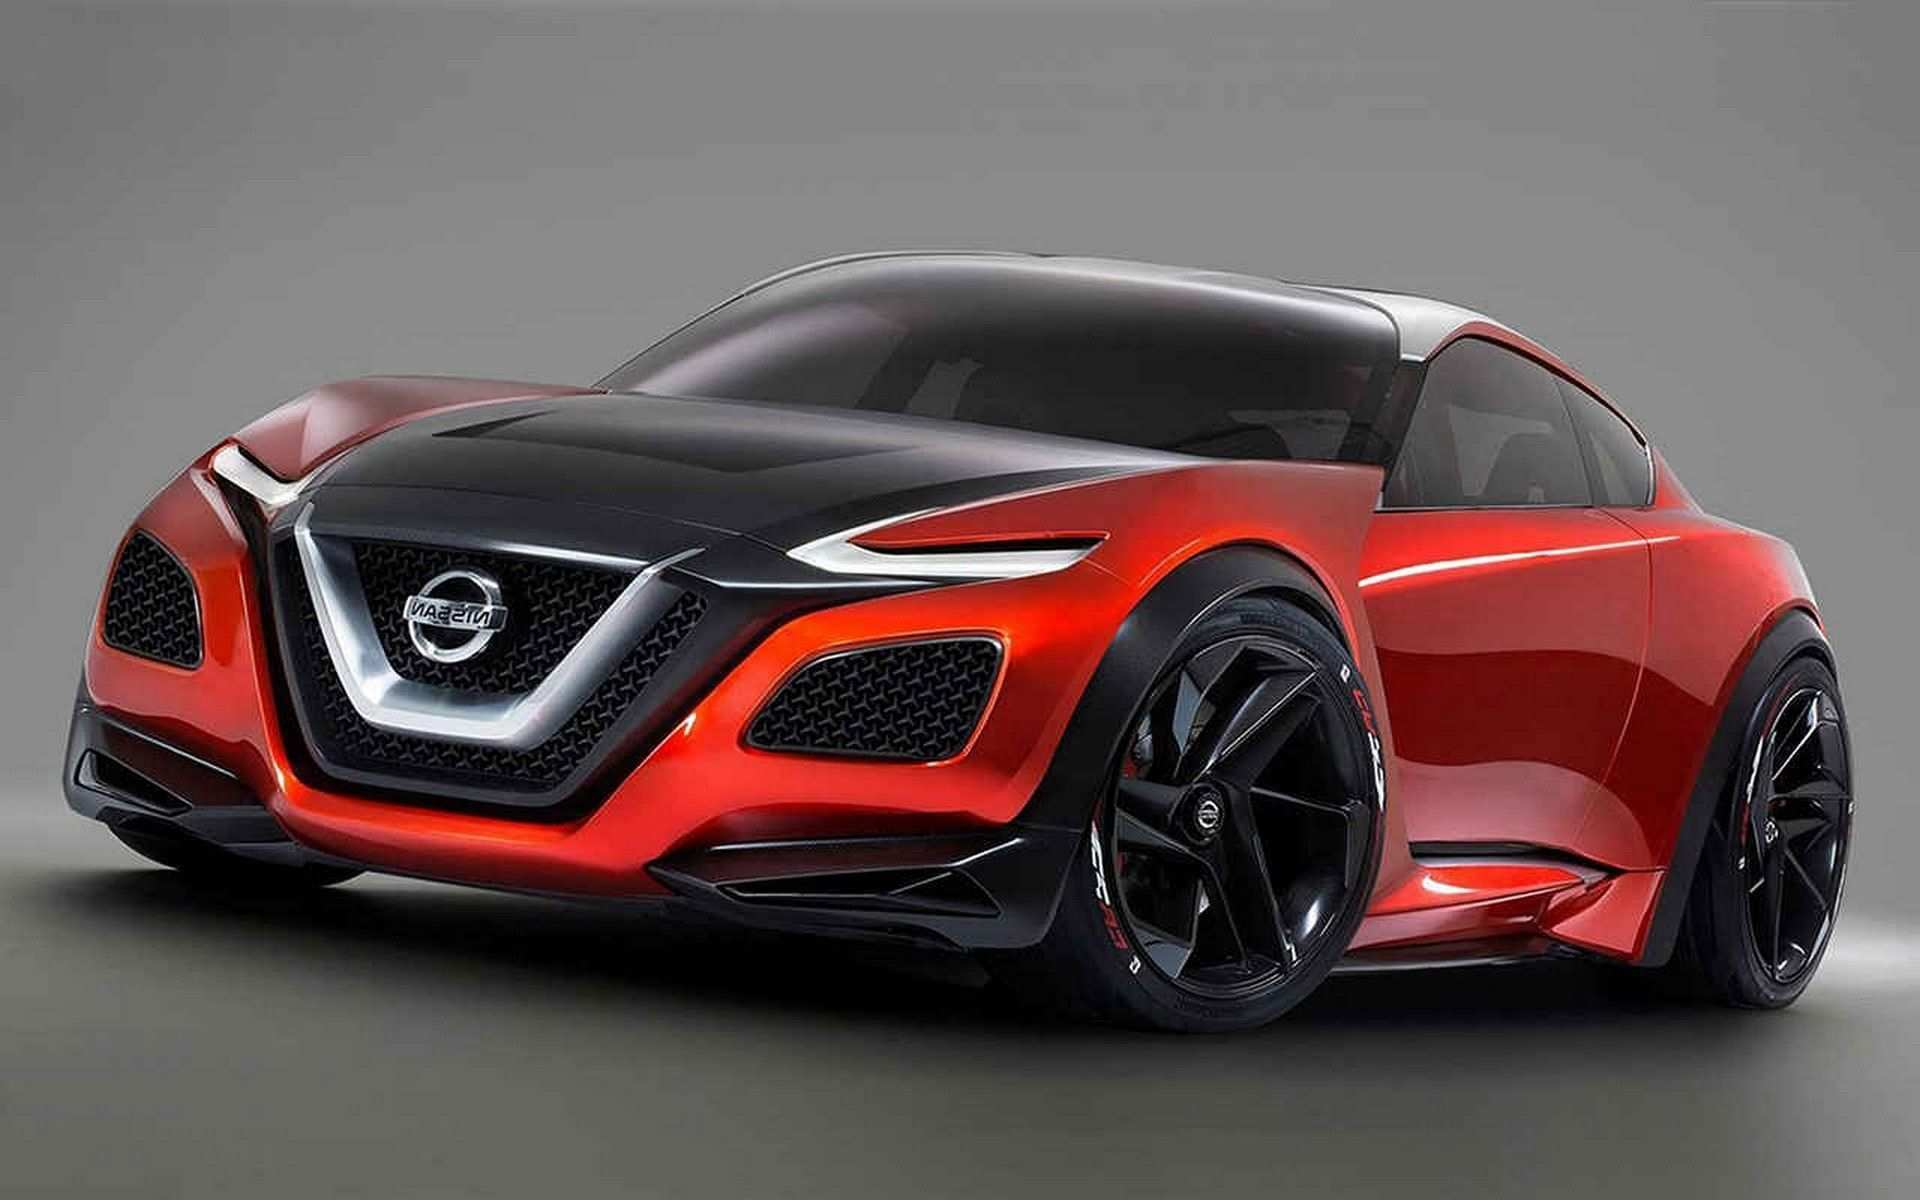 36 Great 2019 Nissan Z Redesign Price And Review Overview for 2019 Nissan Z Redesign Price And Review